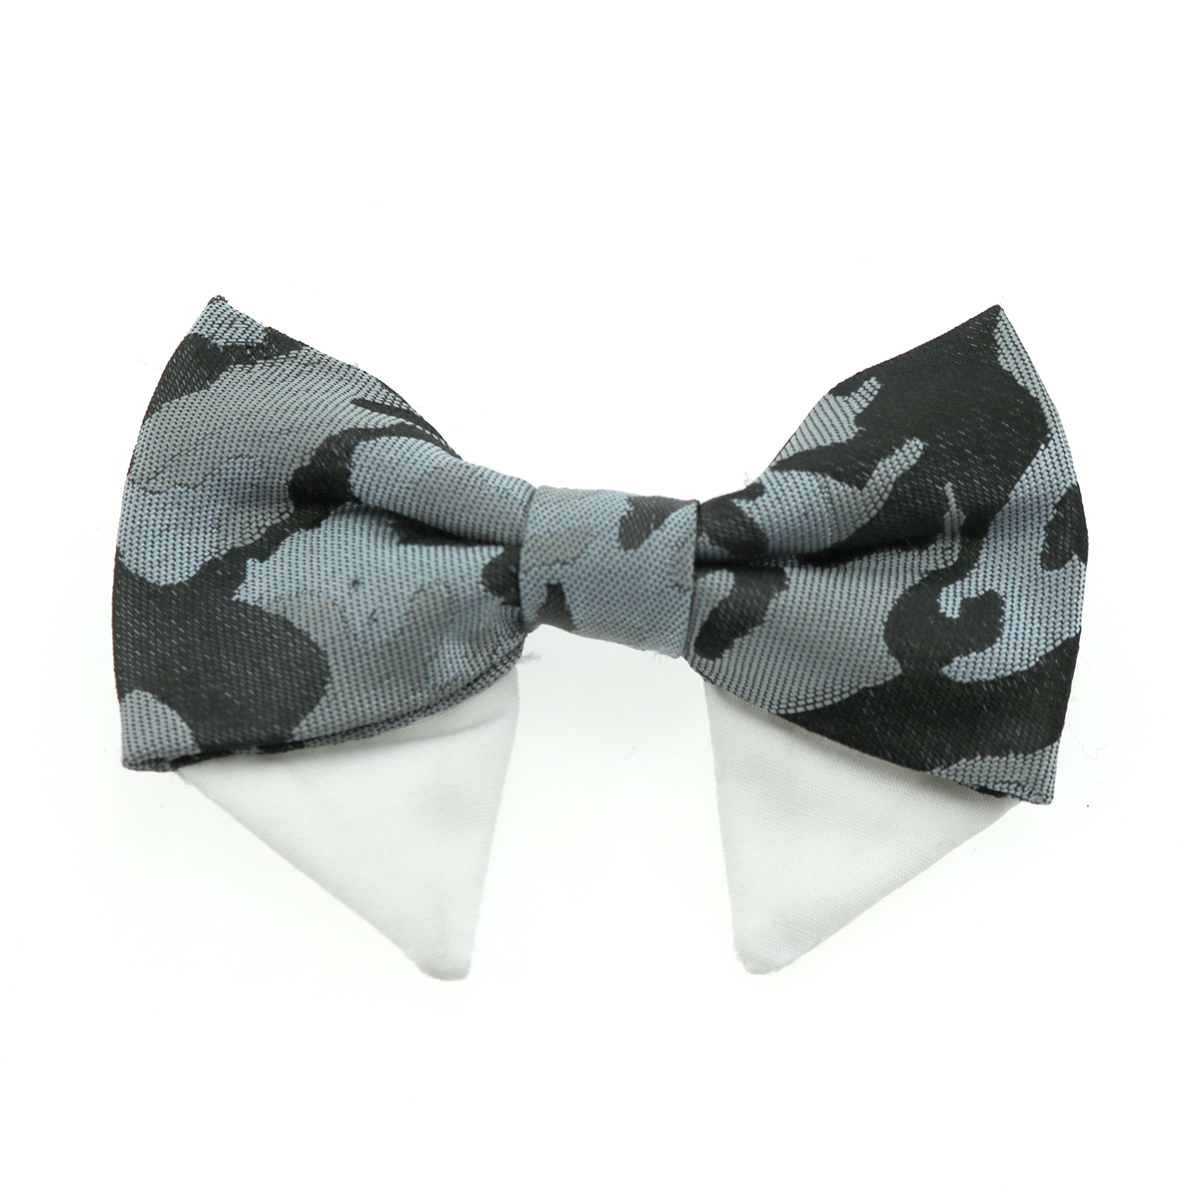 Doggie Design Universal Dog Bow Tie, Gray Camo, Type 2